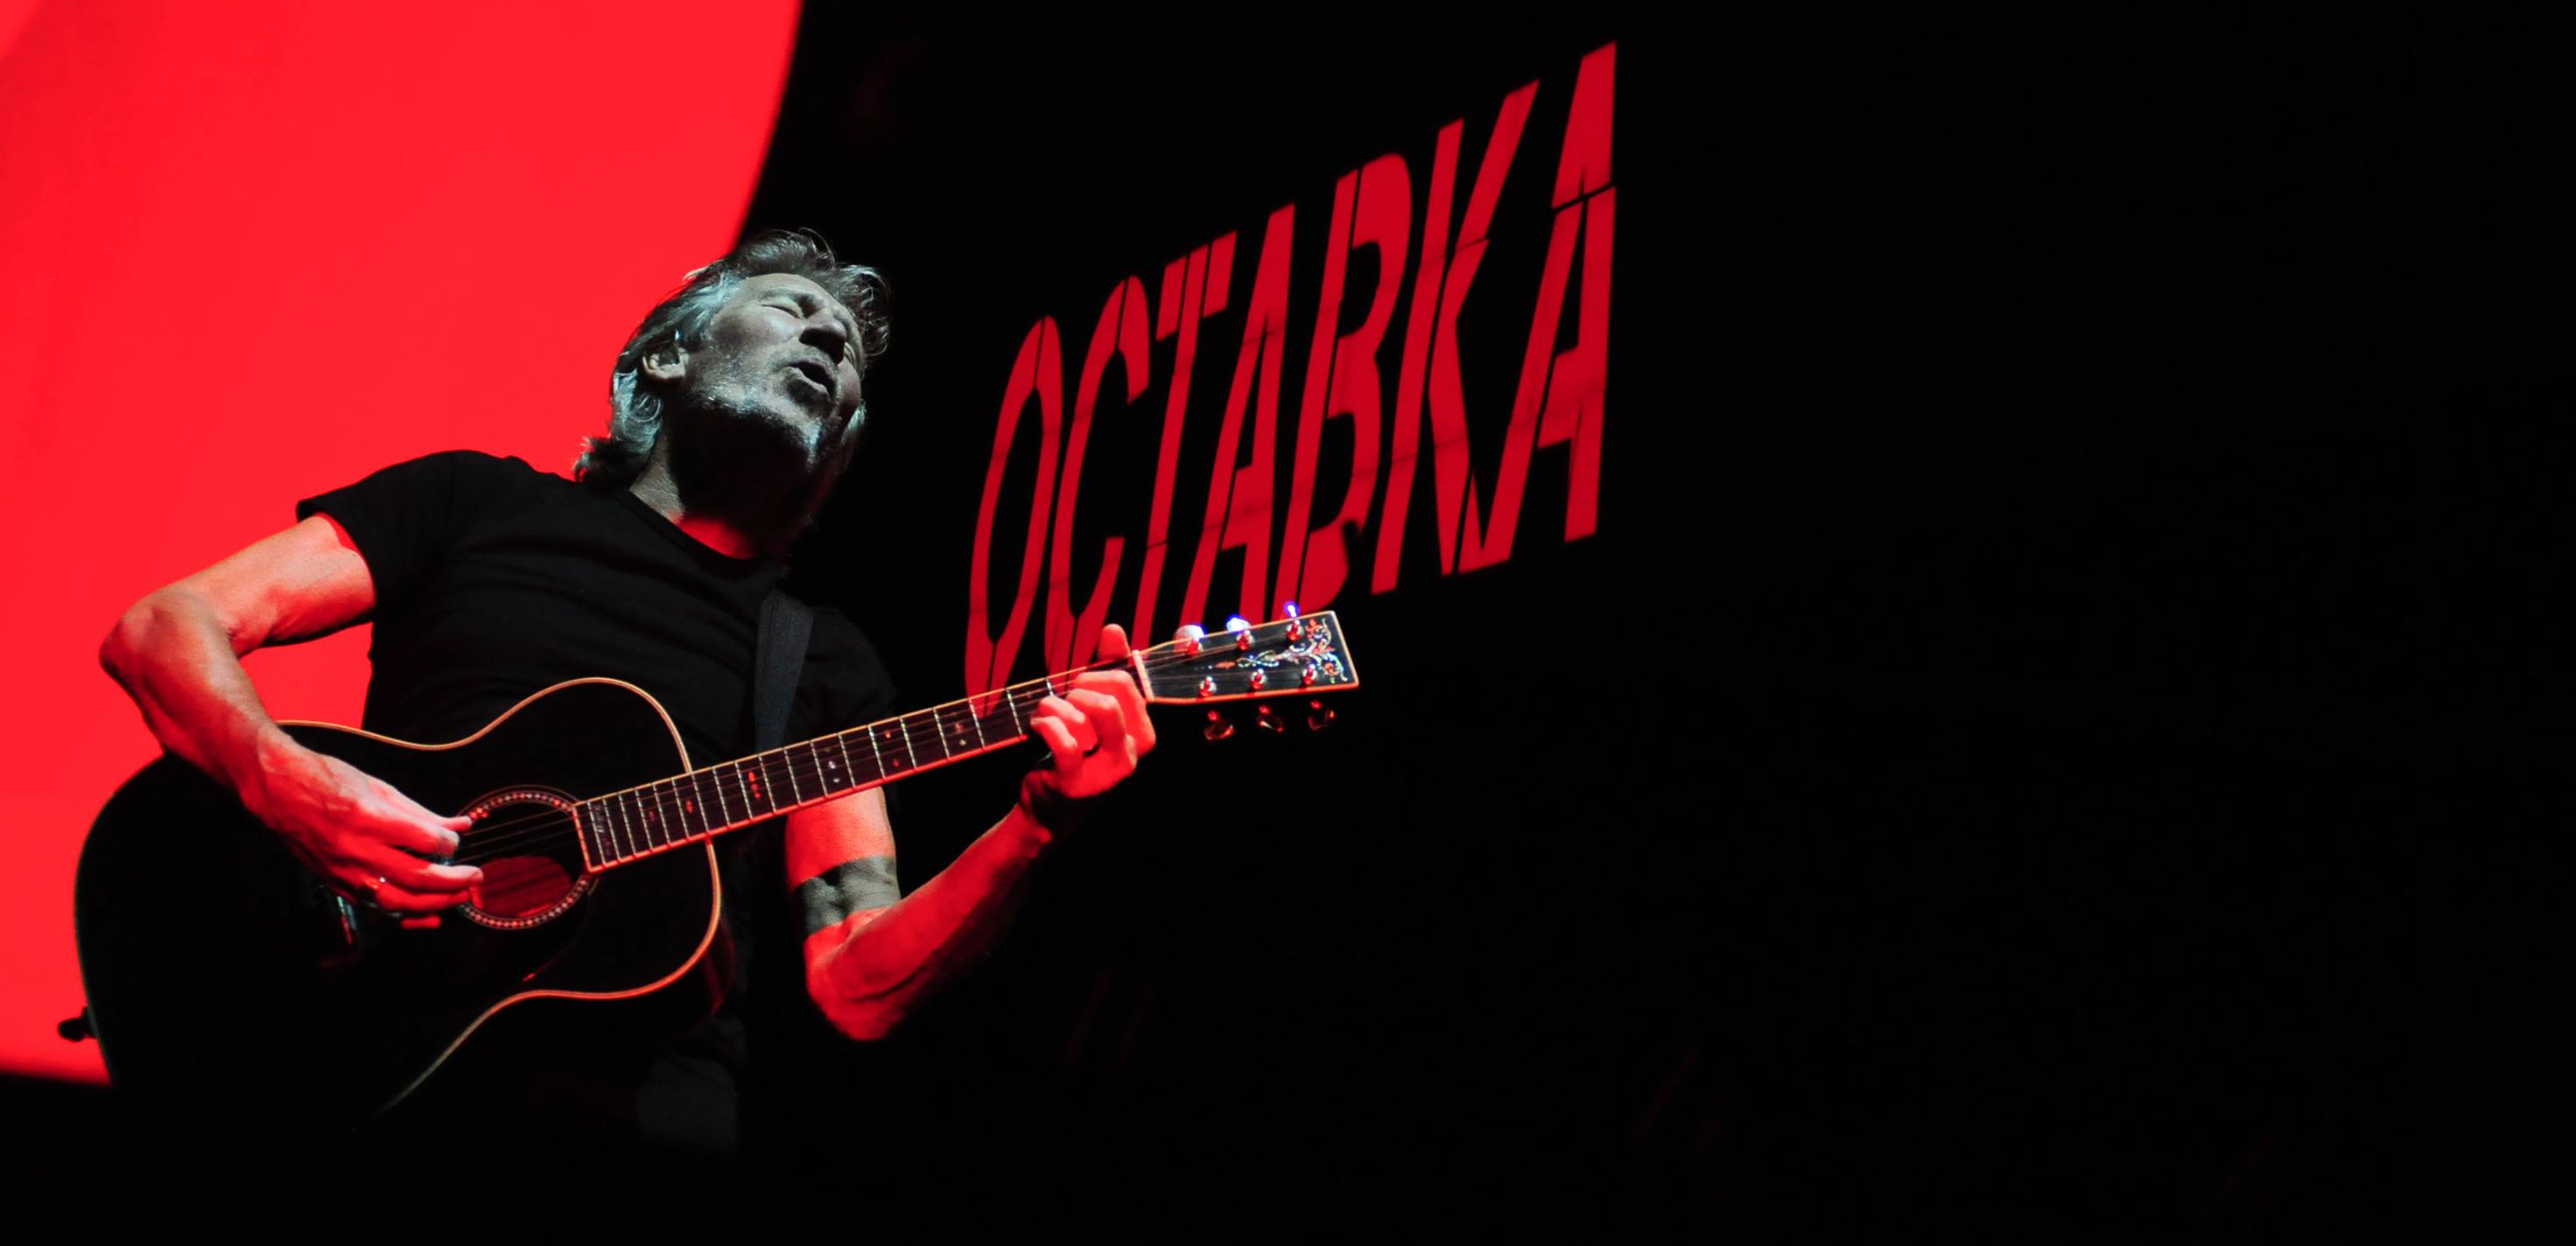 Roger Waters - The Wall Sofia Bivola 1.jpg